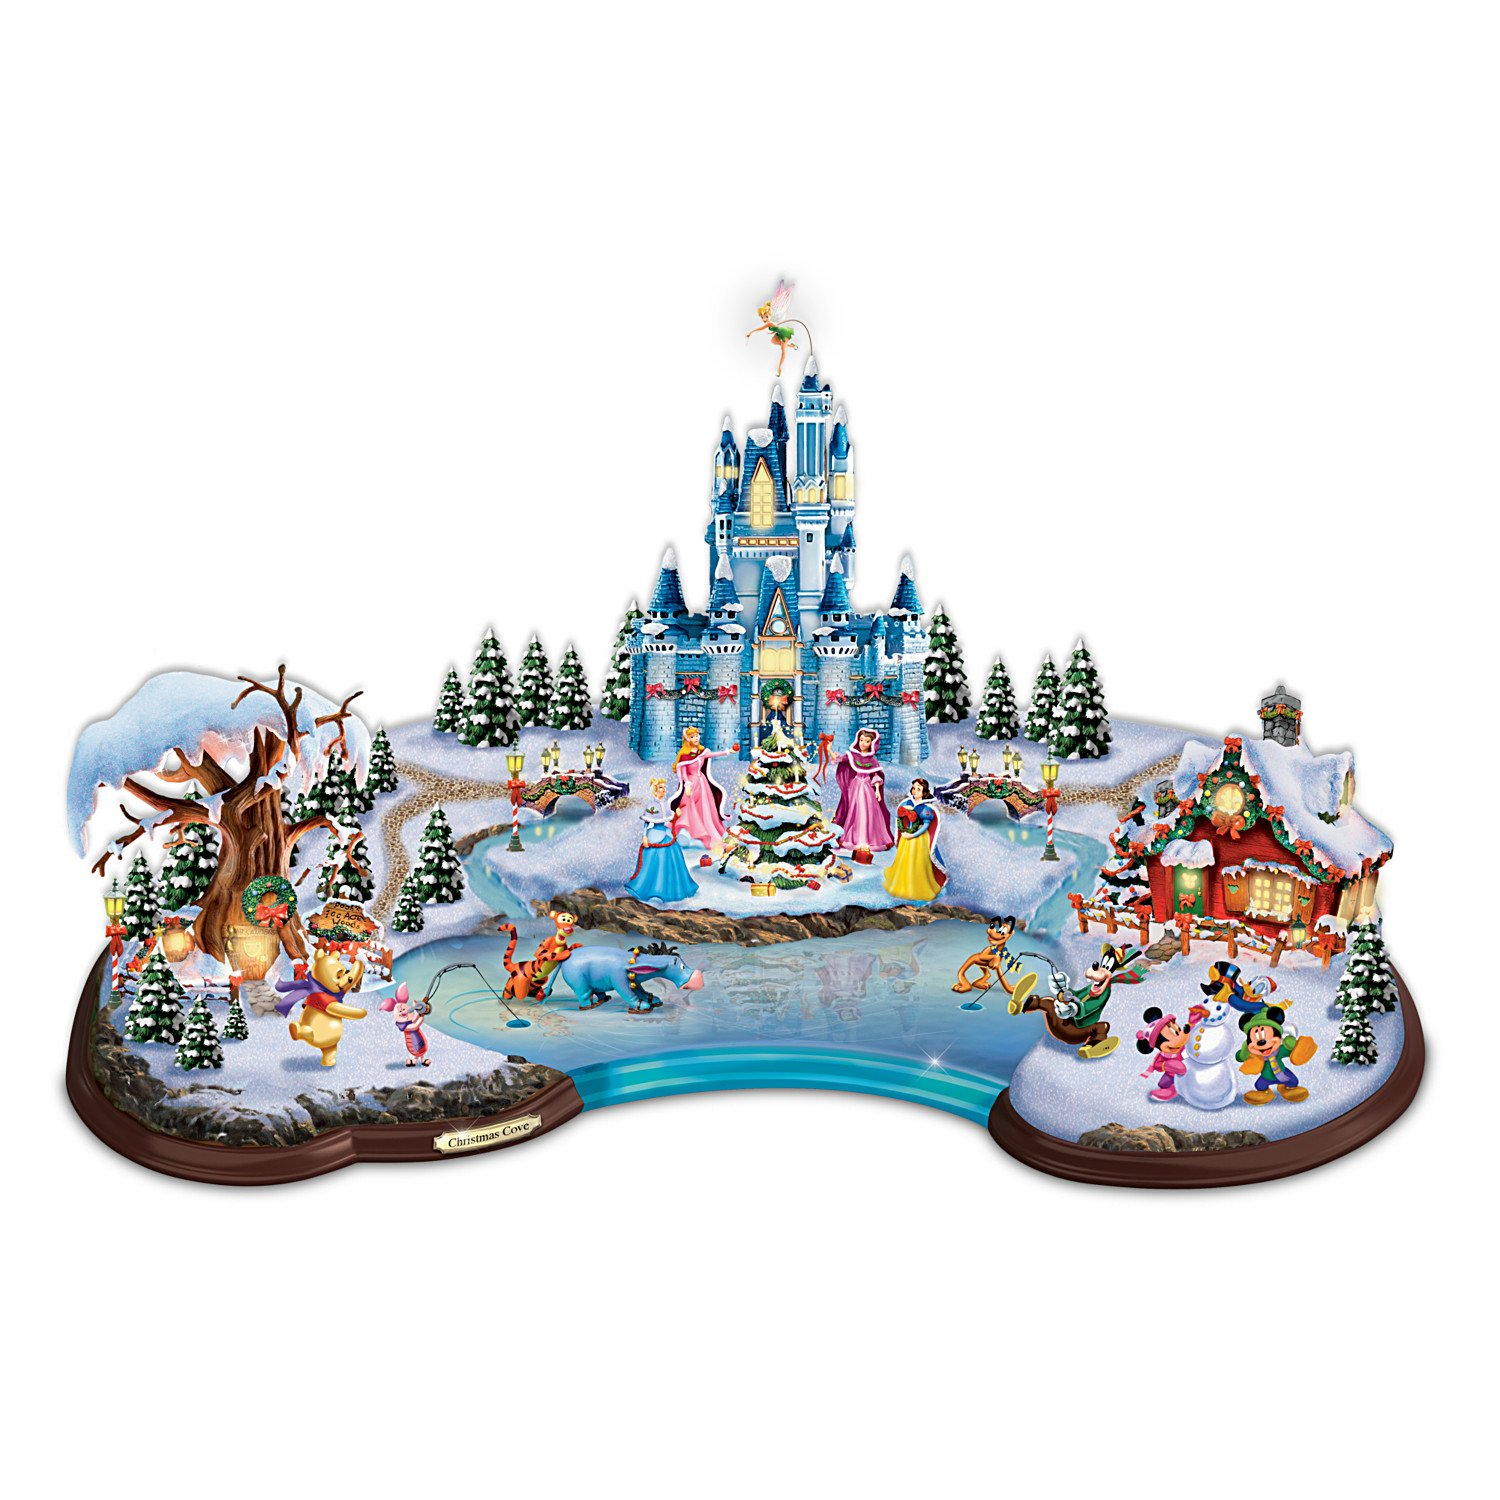 amazoncom disney light up christmas cove village sculpture by hawthorne village home kitchen - Disney Christmas Tree